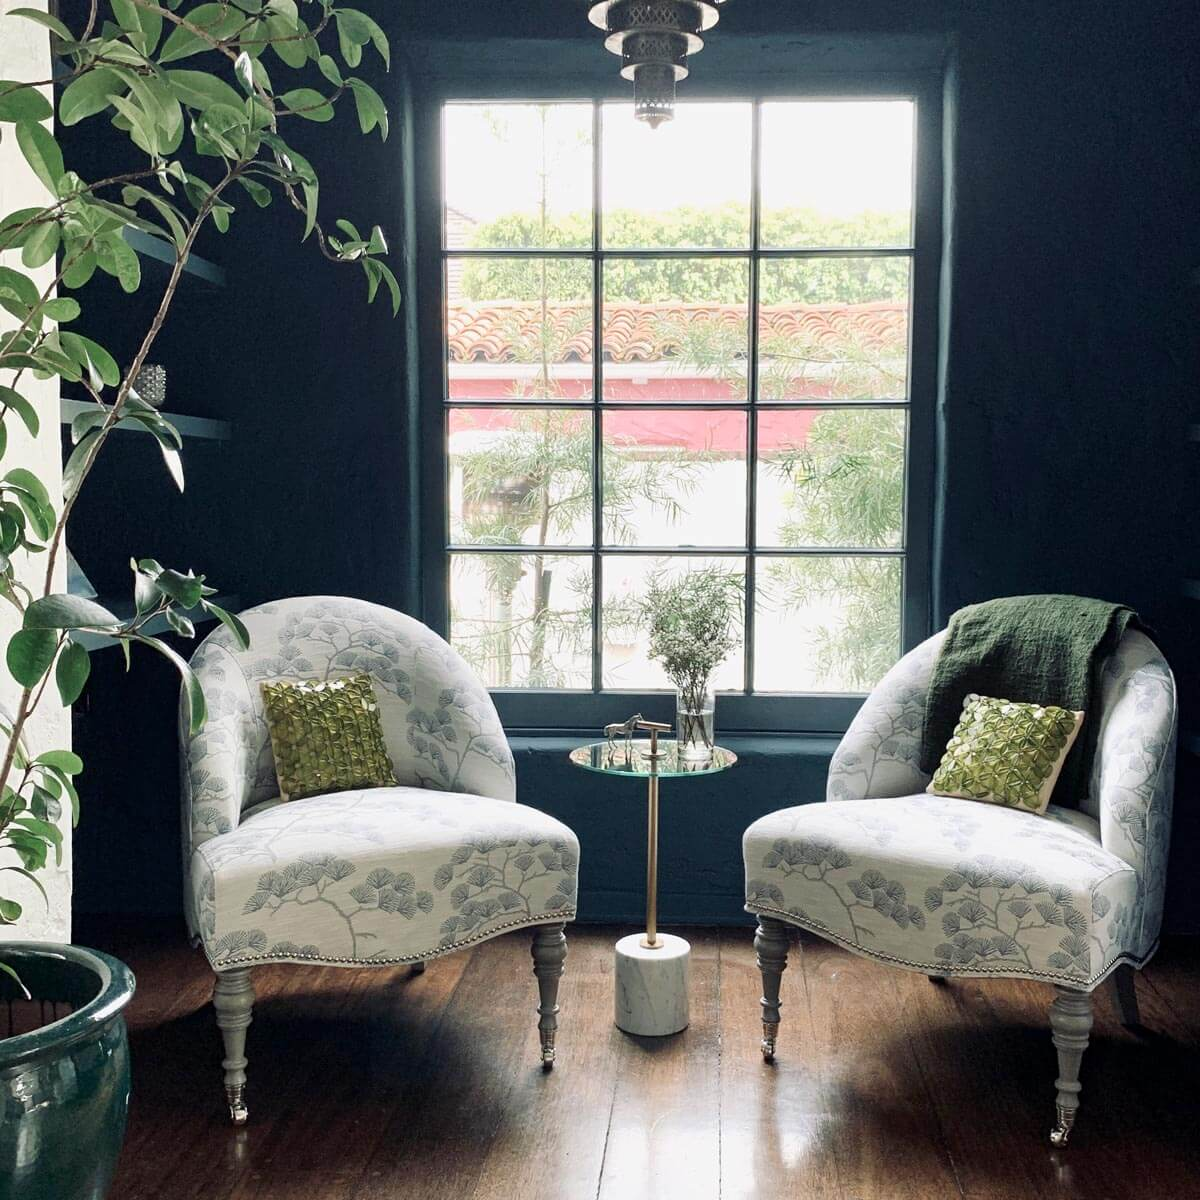 Pair of Mae Chairs with Handler Pull-Up Table